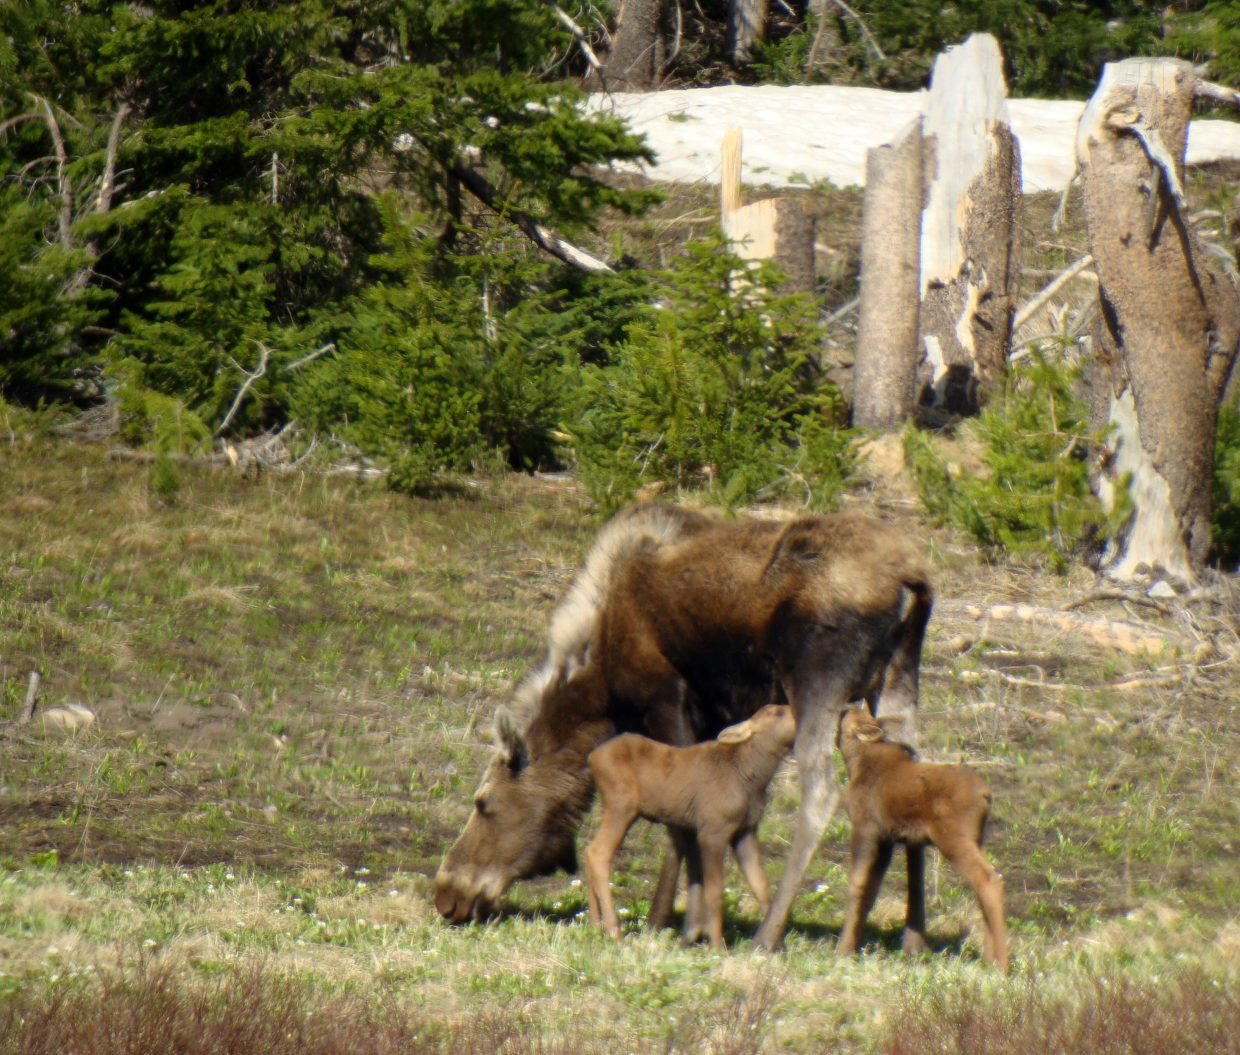 Moose with twin calves at Rabbit Ears Pass. Submitted by: David Moulton